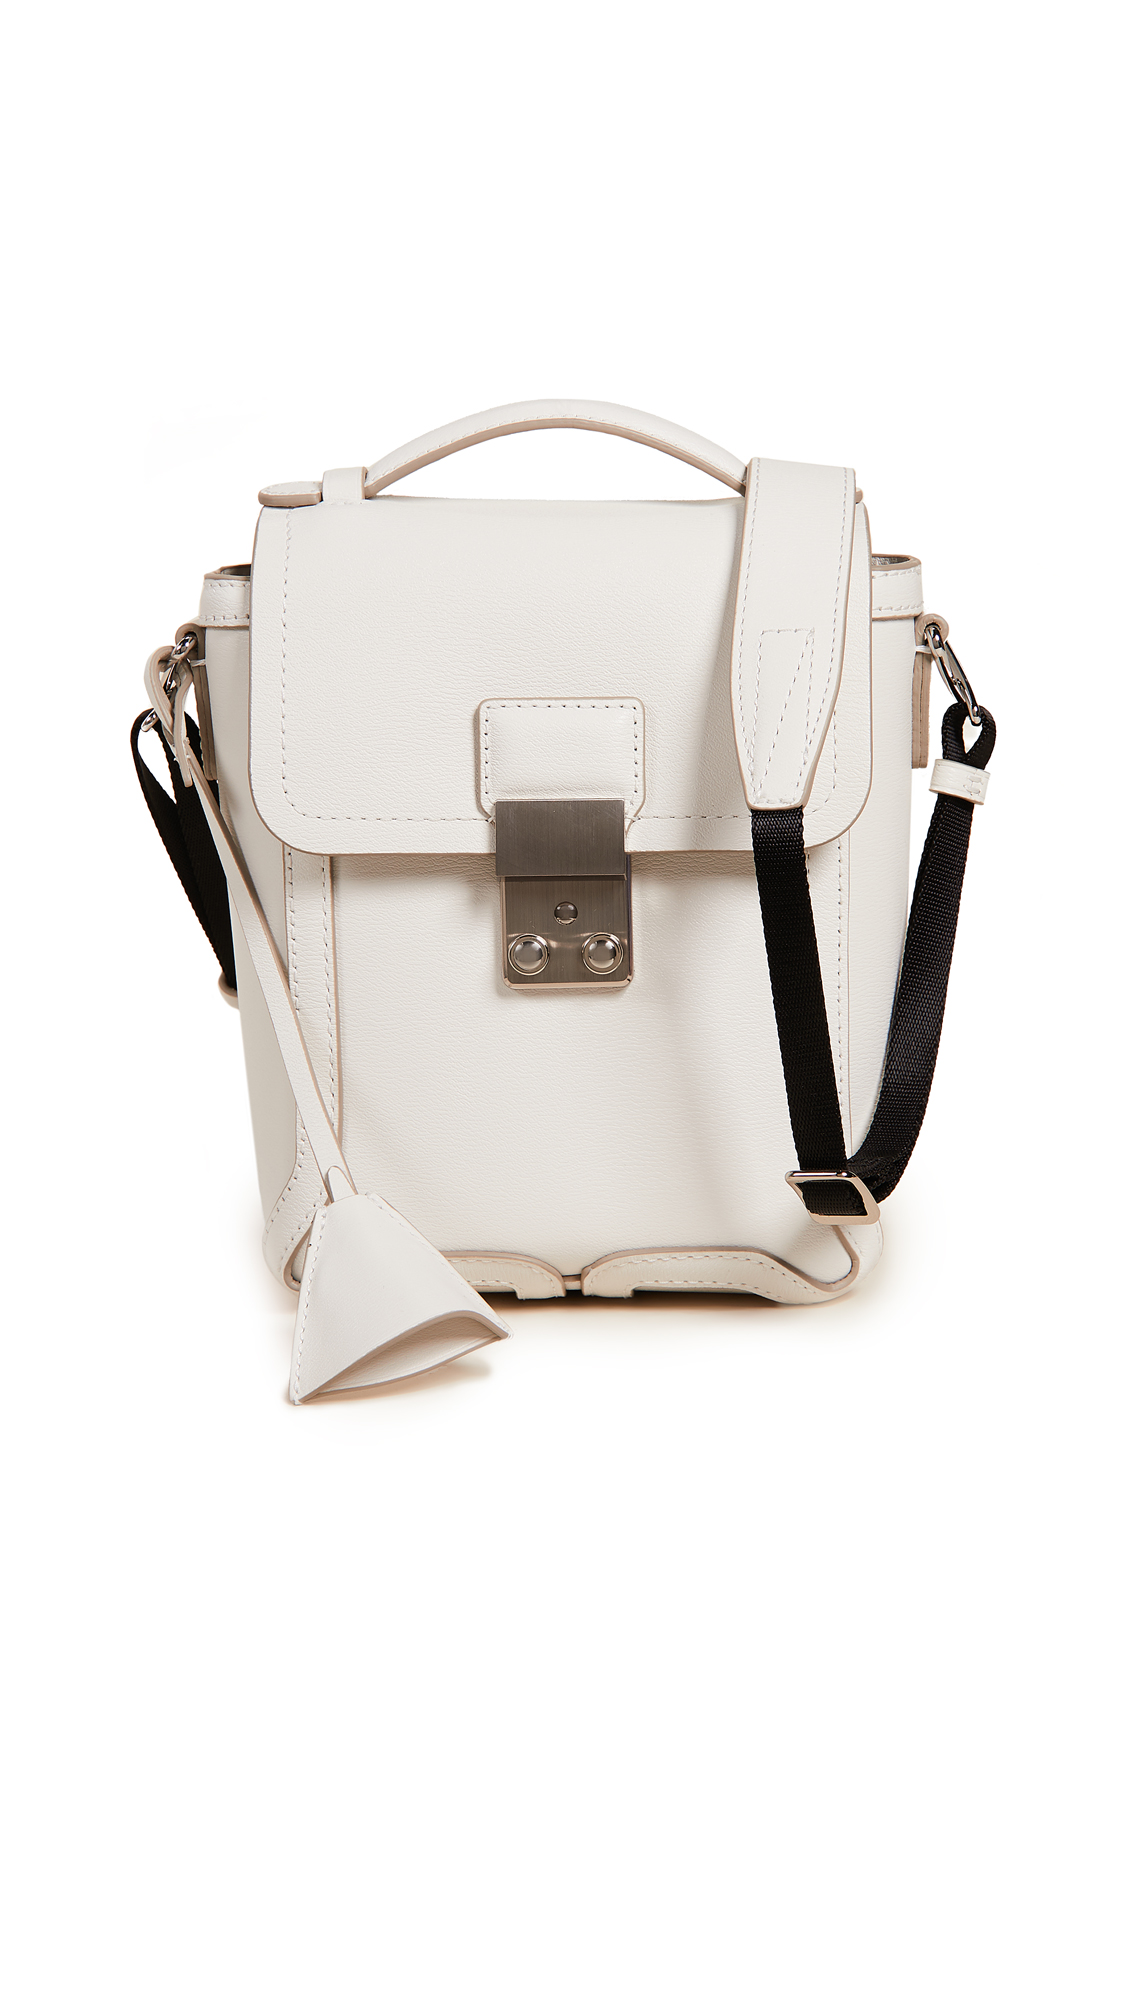 3.1 Phillip Lim Pashli Camera Bag - Antique White